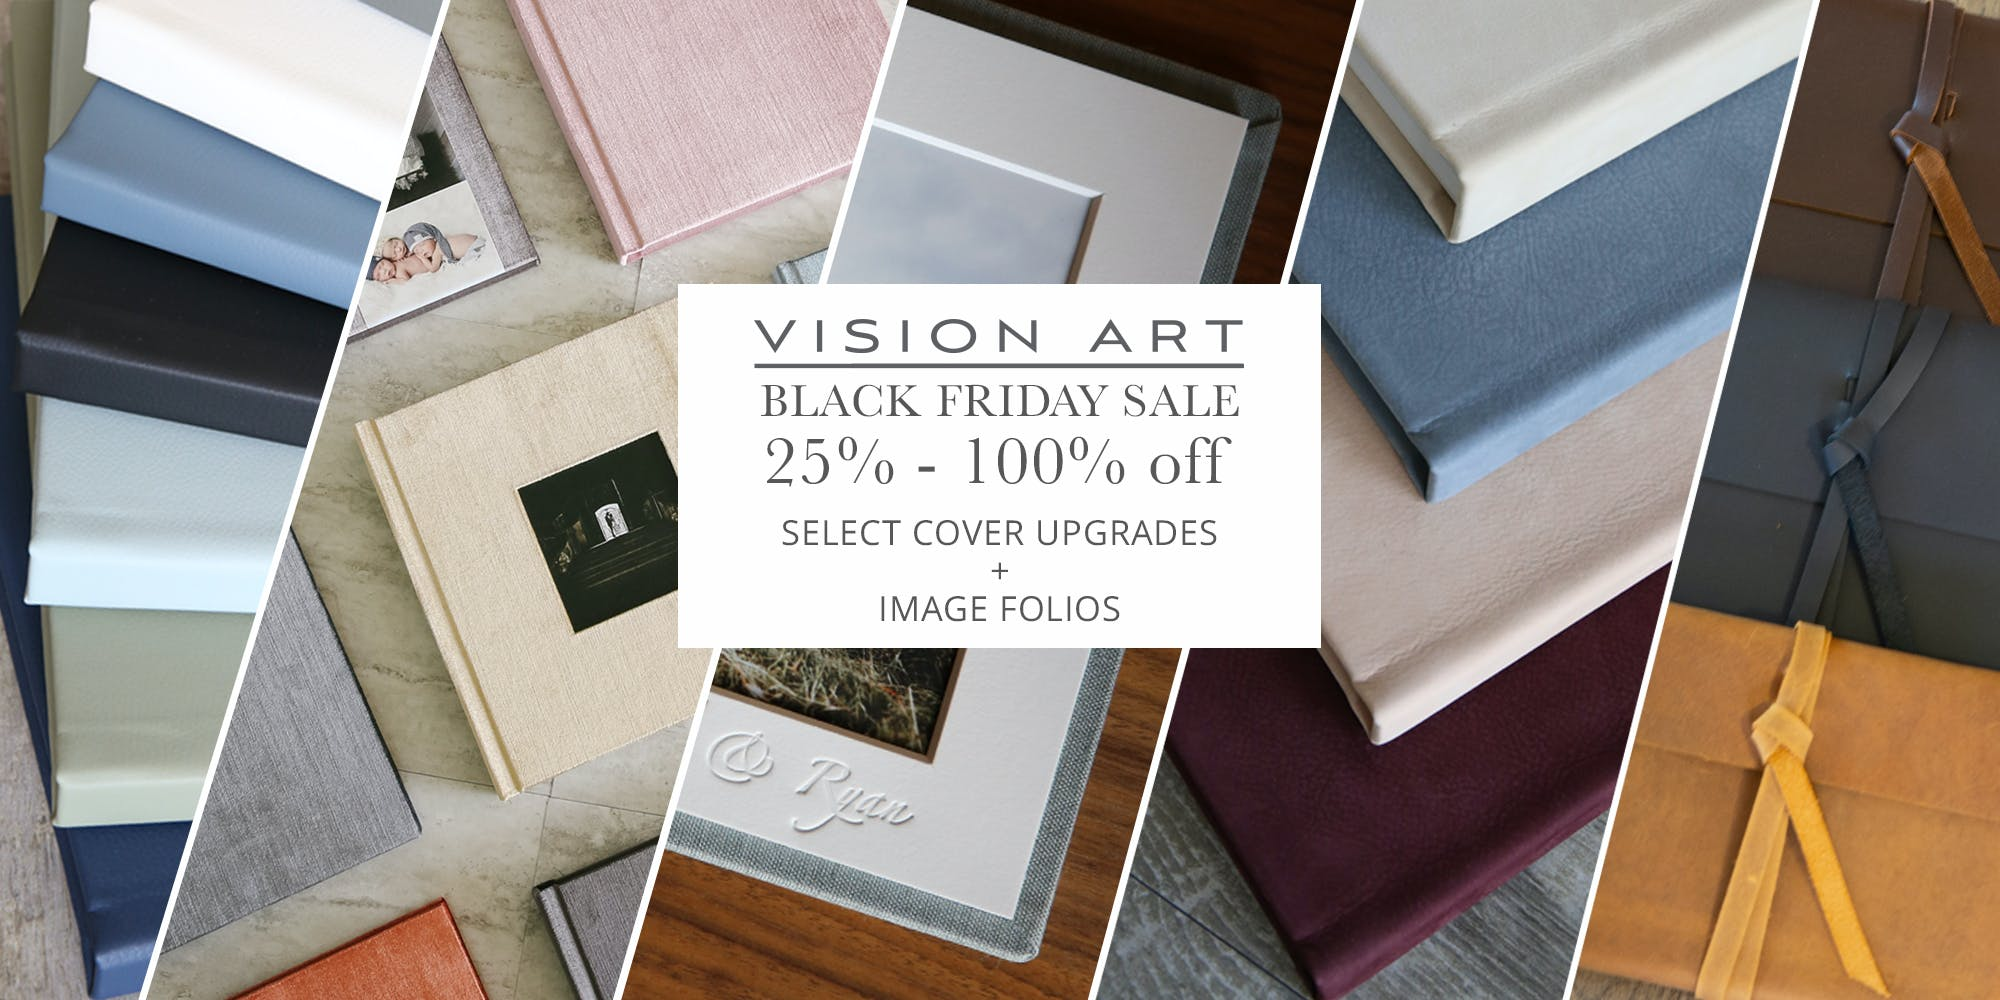 Vision Art Black Friday 2019 deals for photographers